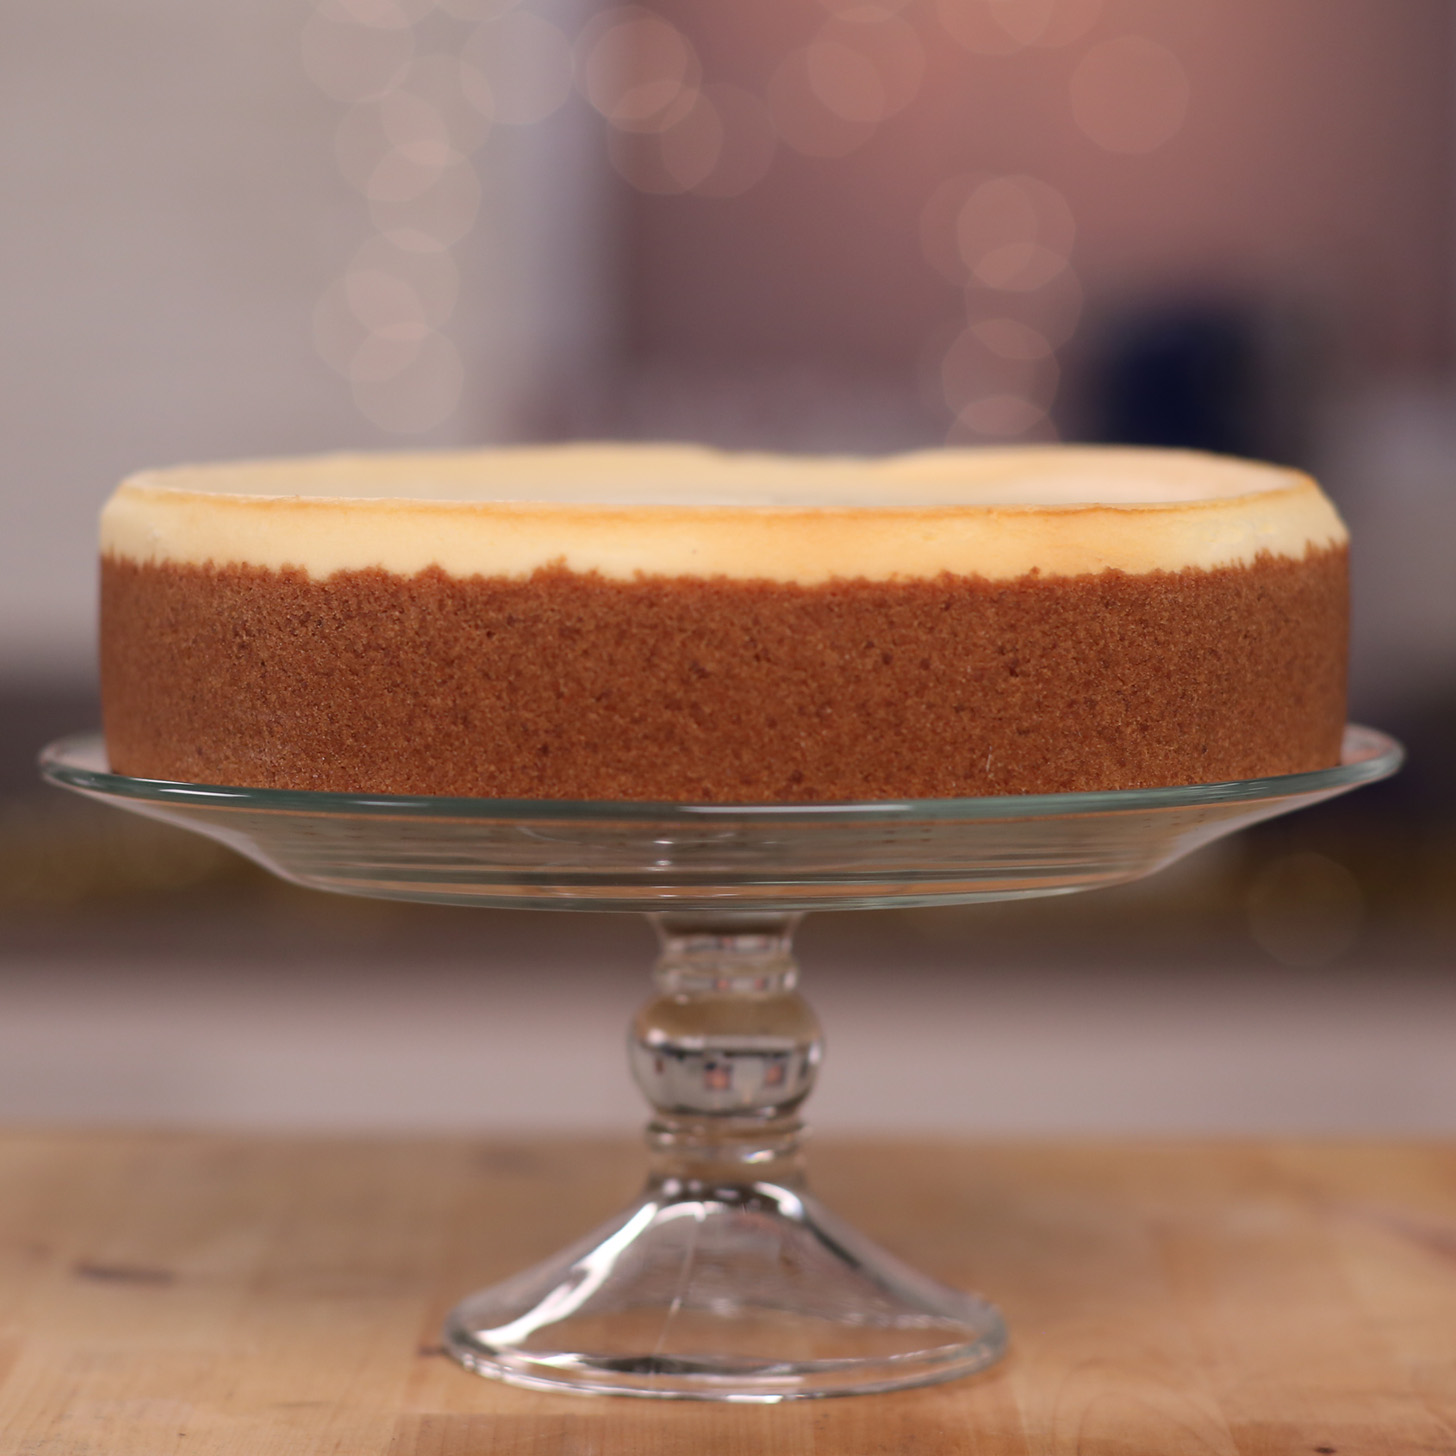 Our Take on The Cheesecake Factory s Original Cheesecake